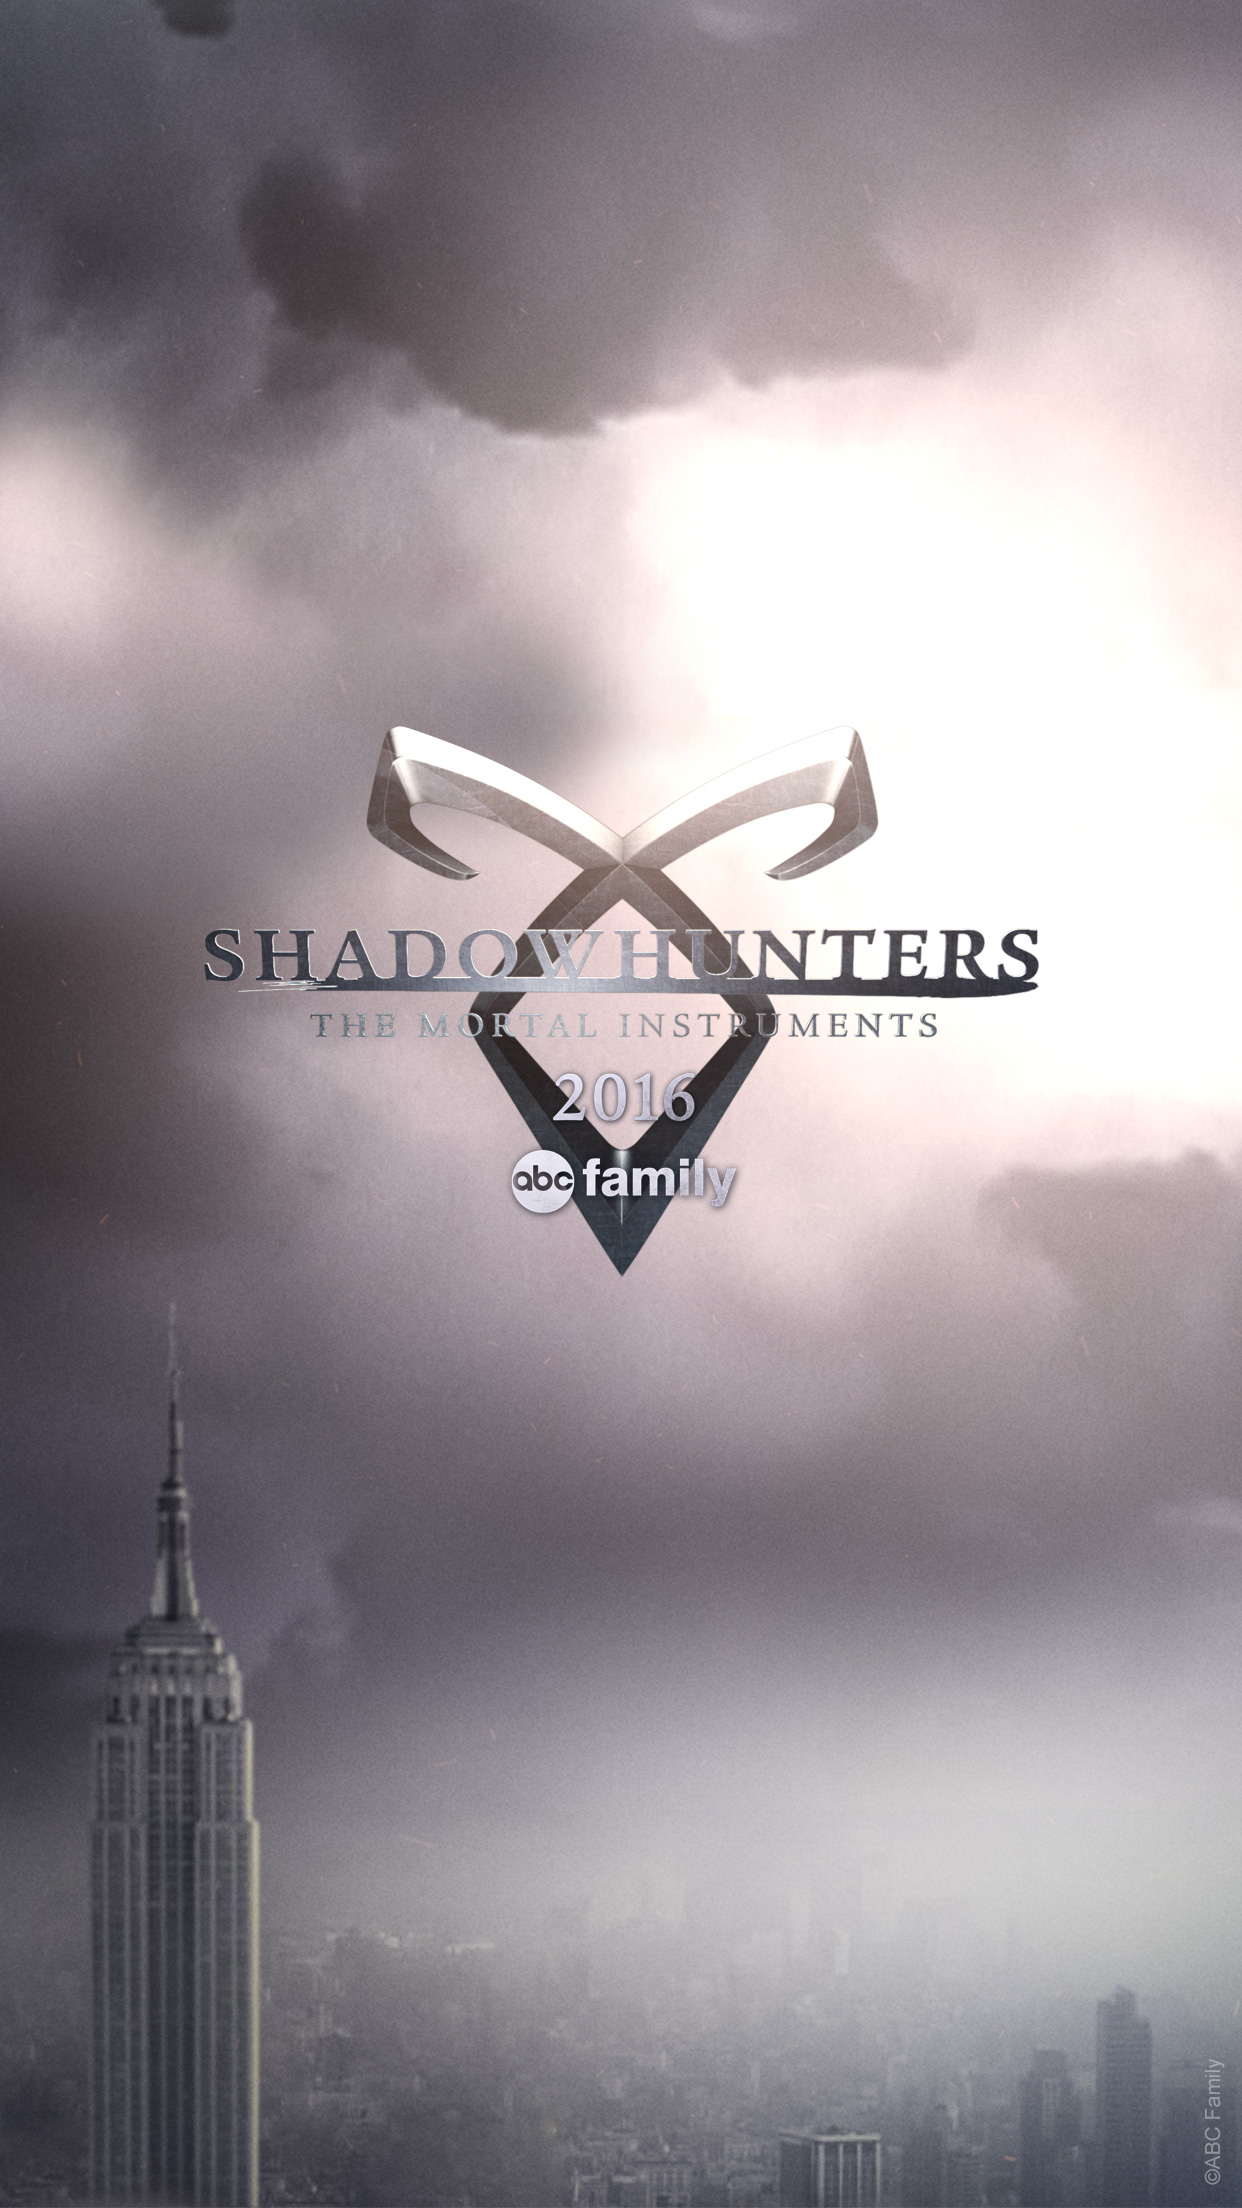 Shadowhunters - Shadowhunters Mobile Backgrounds to Rock Your World - 1001